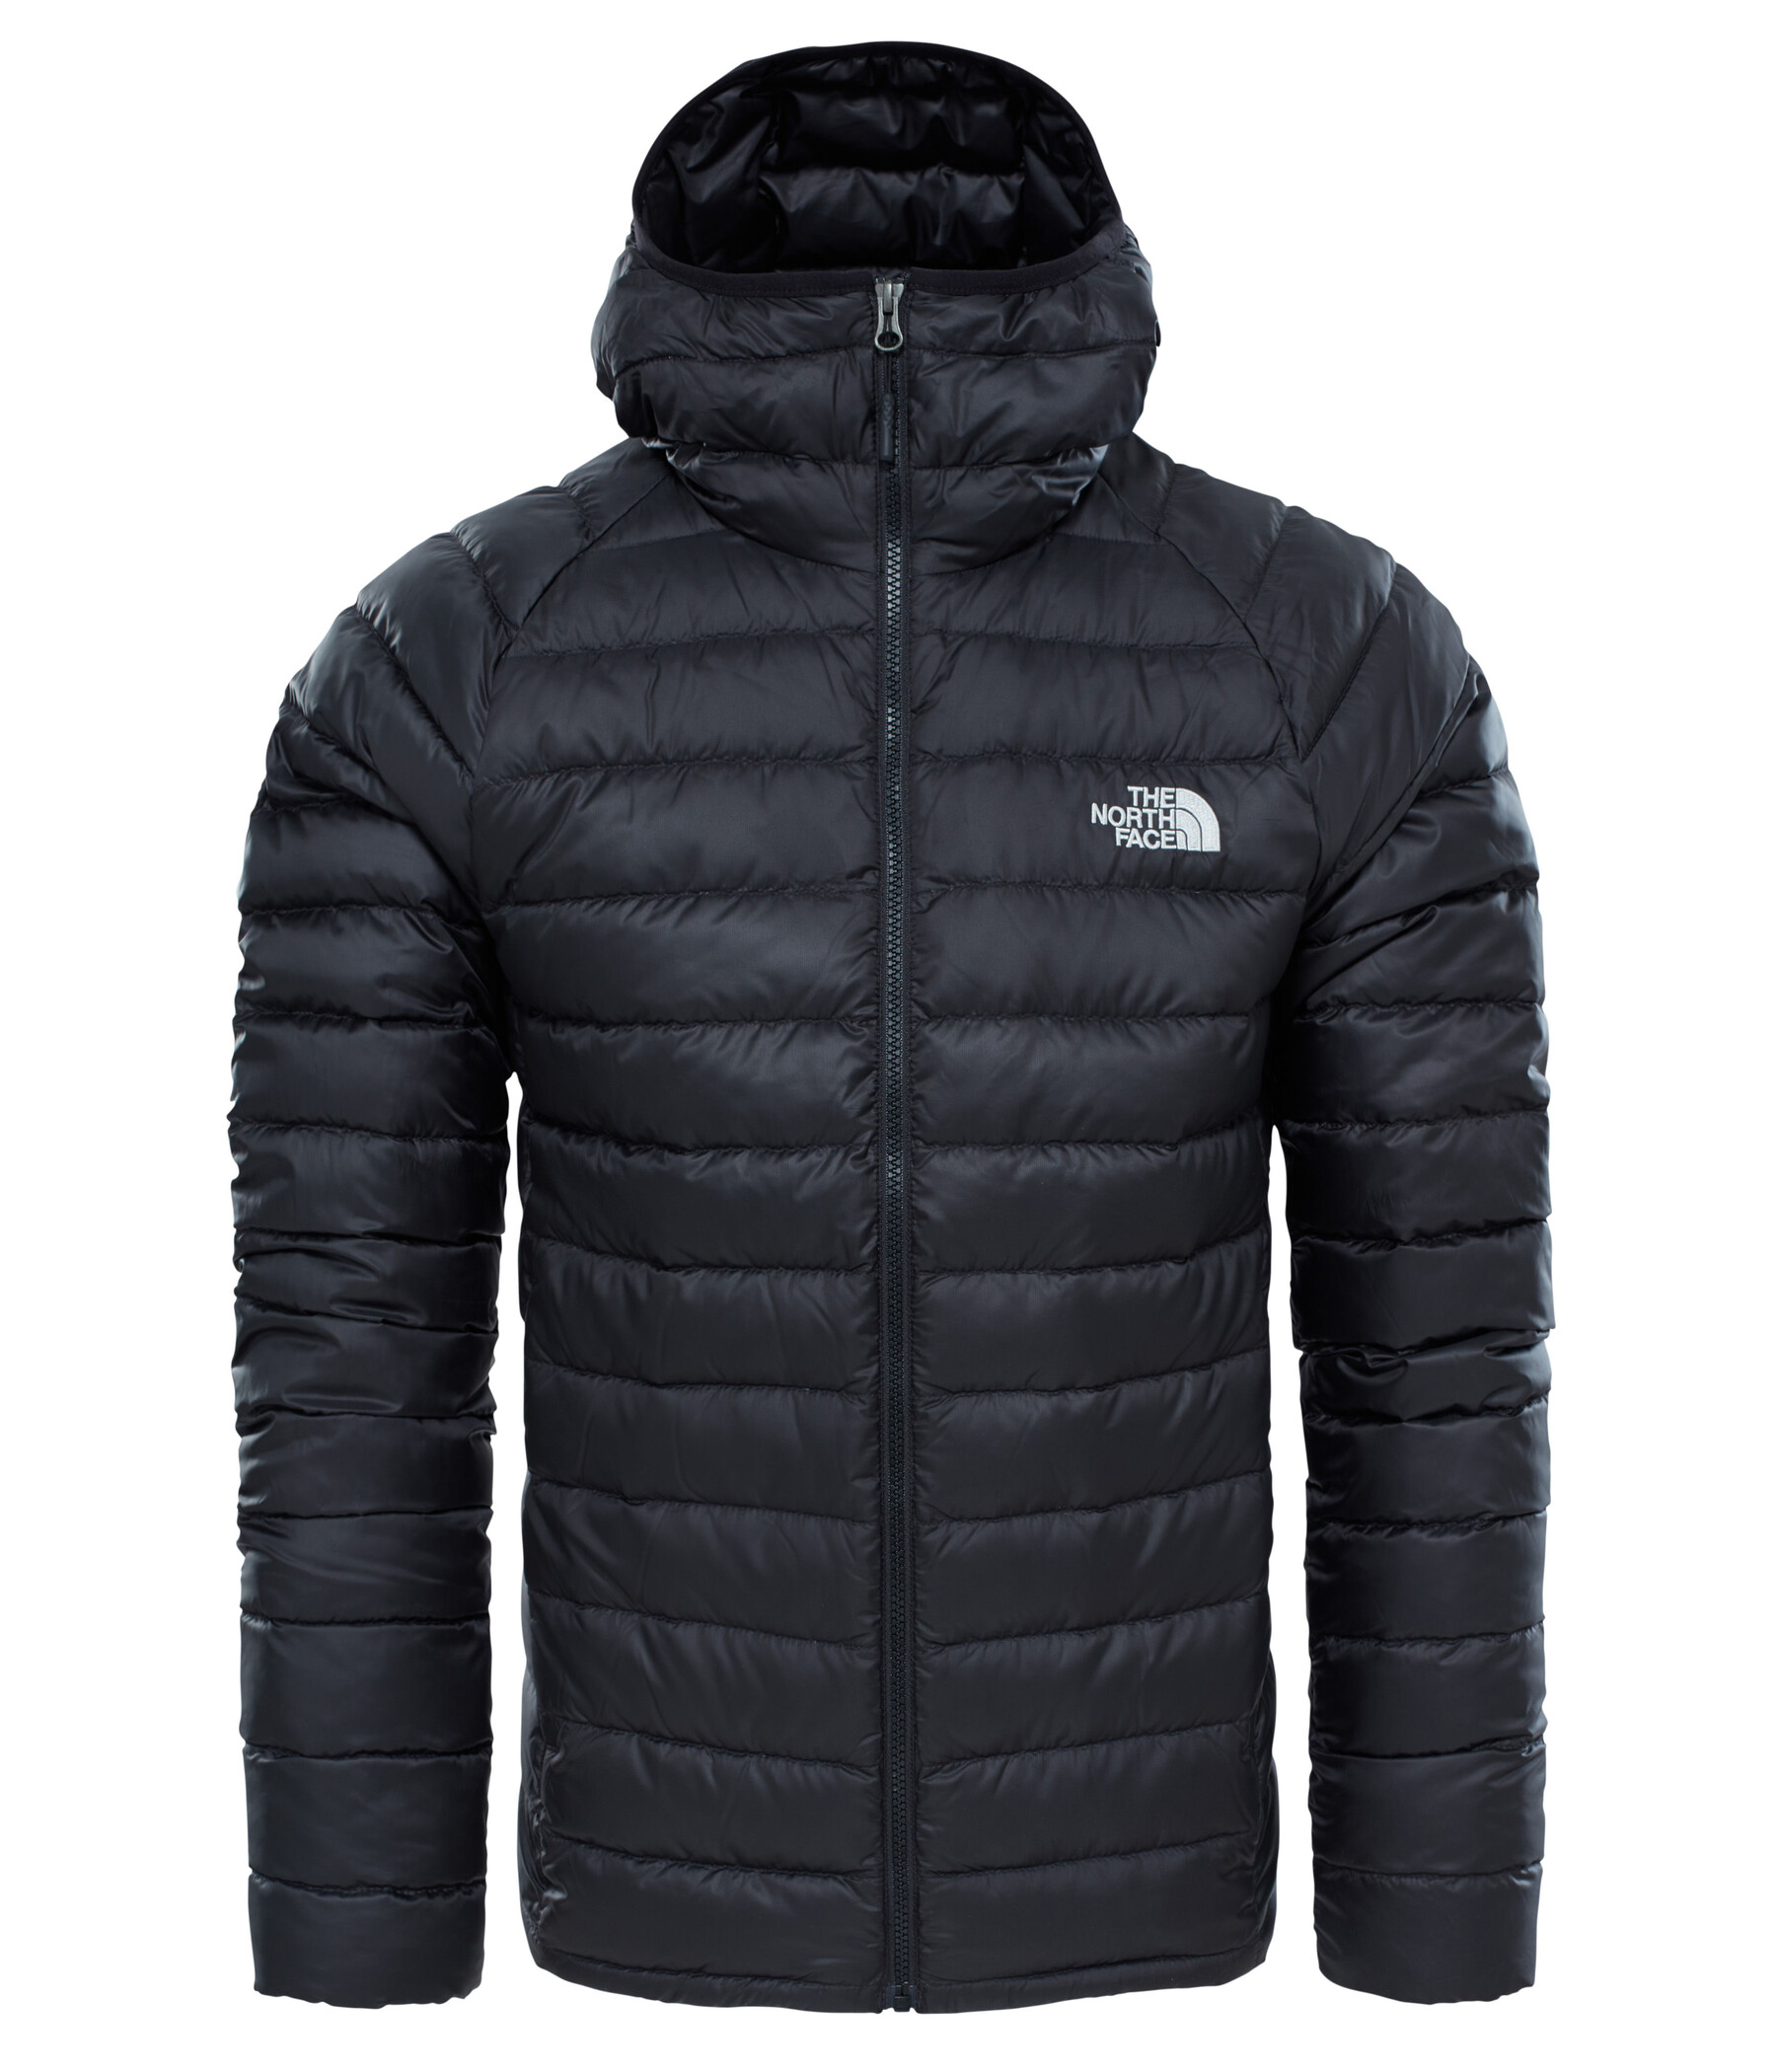 The North Face Resolve Down Hoodie, dunjacka herr Grön